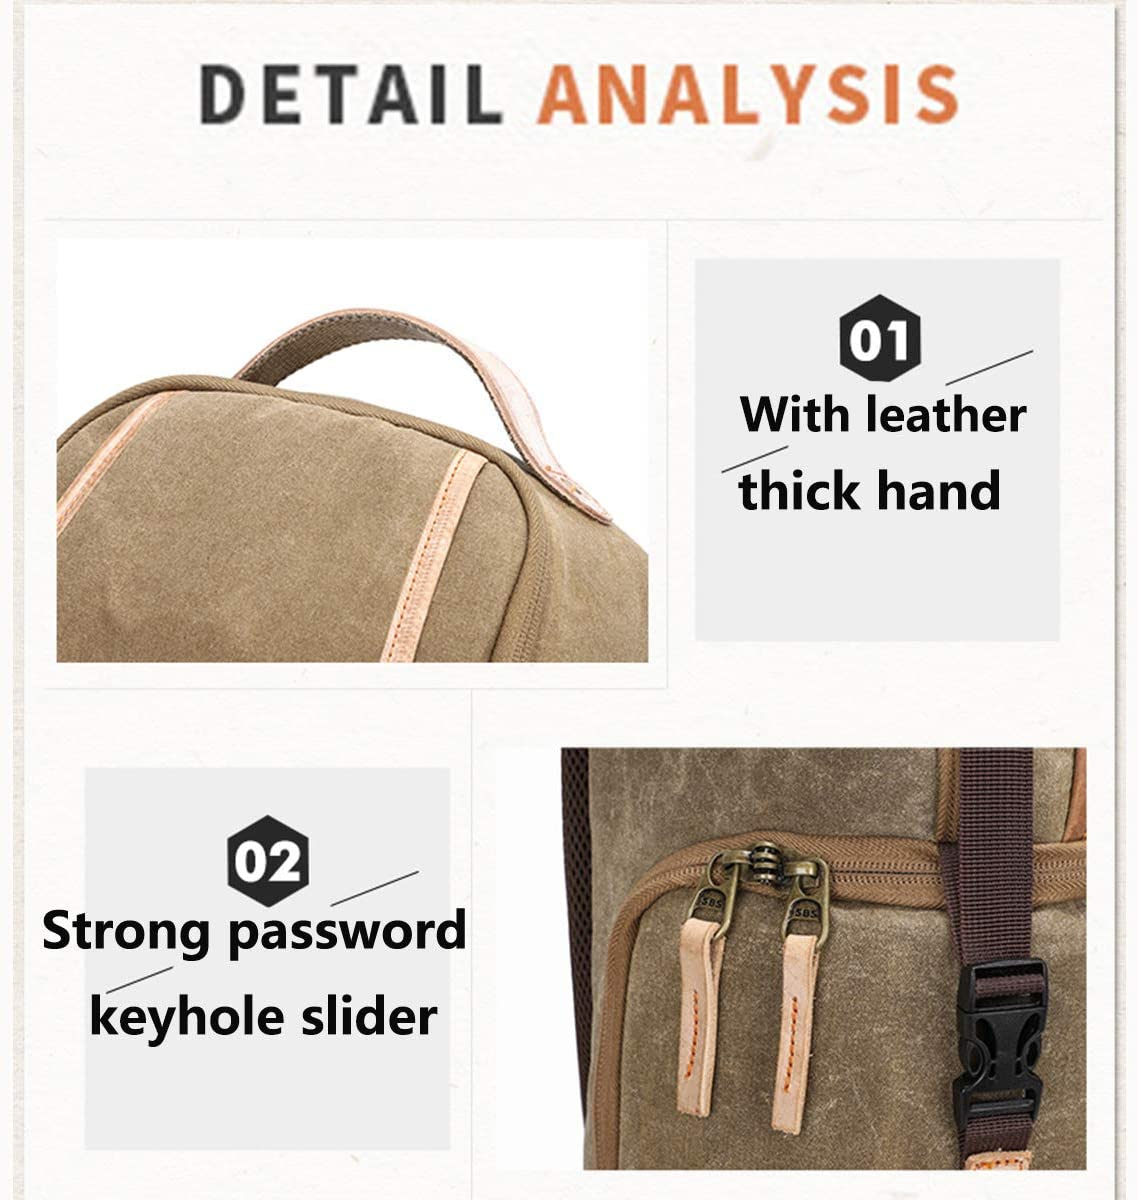 Canvas Vintage for Nikon Canon Sony with 2 Compartments and Tripod Small,Khaki OLDFAI Camera Backpack Sling Over Shoulder Waterproof Anti-Theft Backpack for Mirrorless